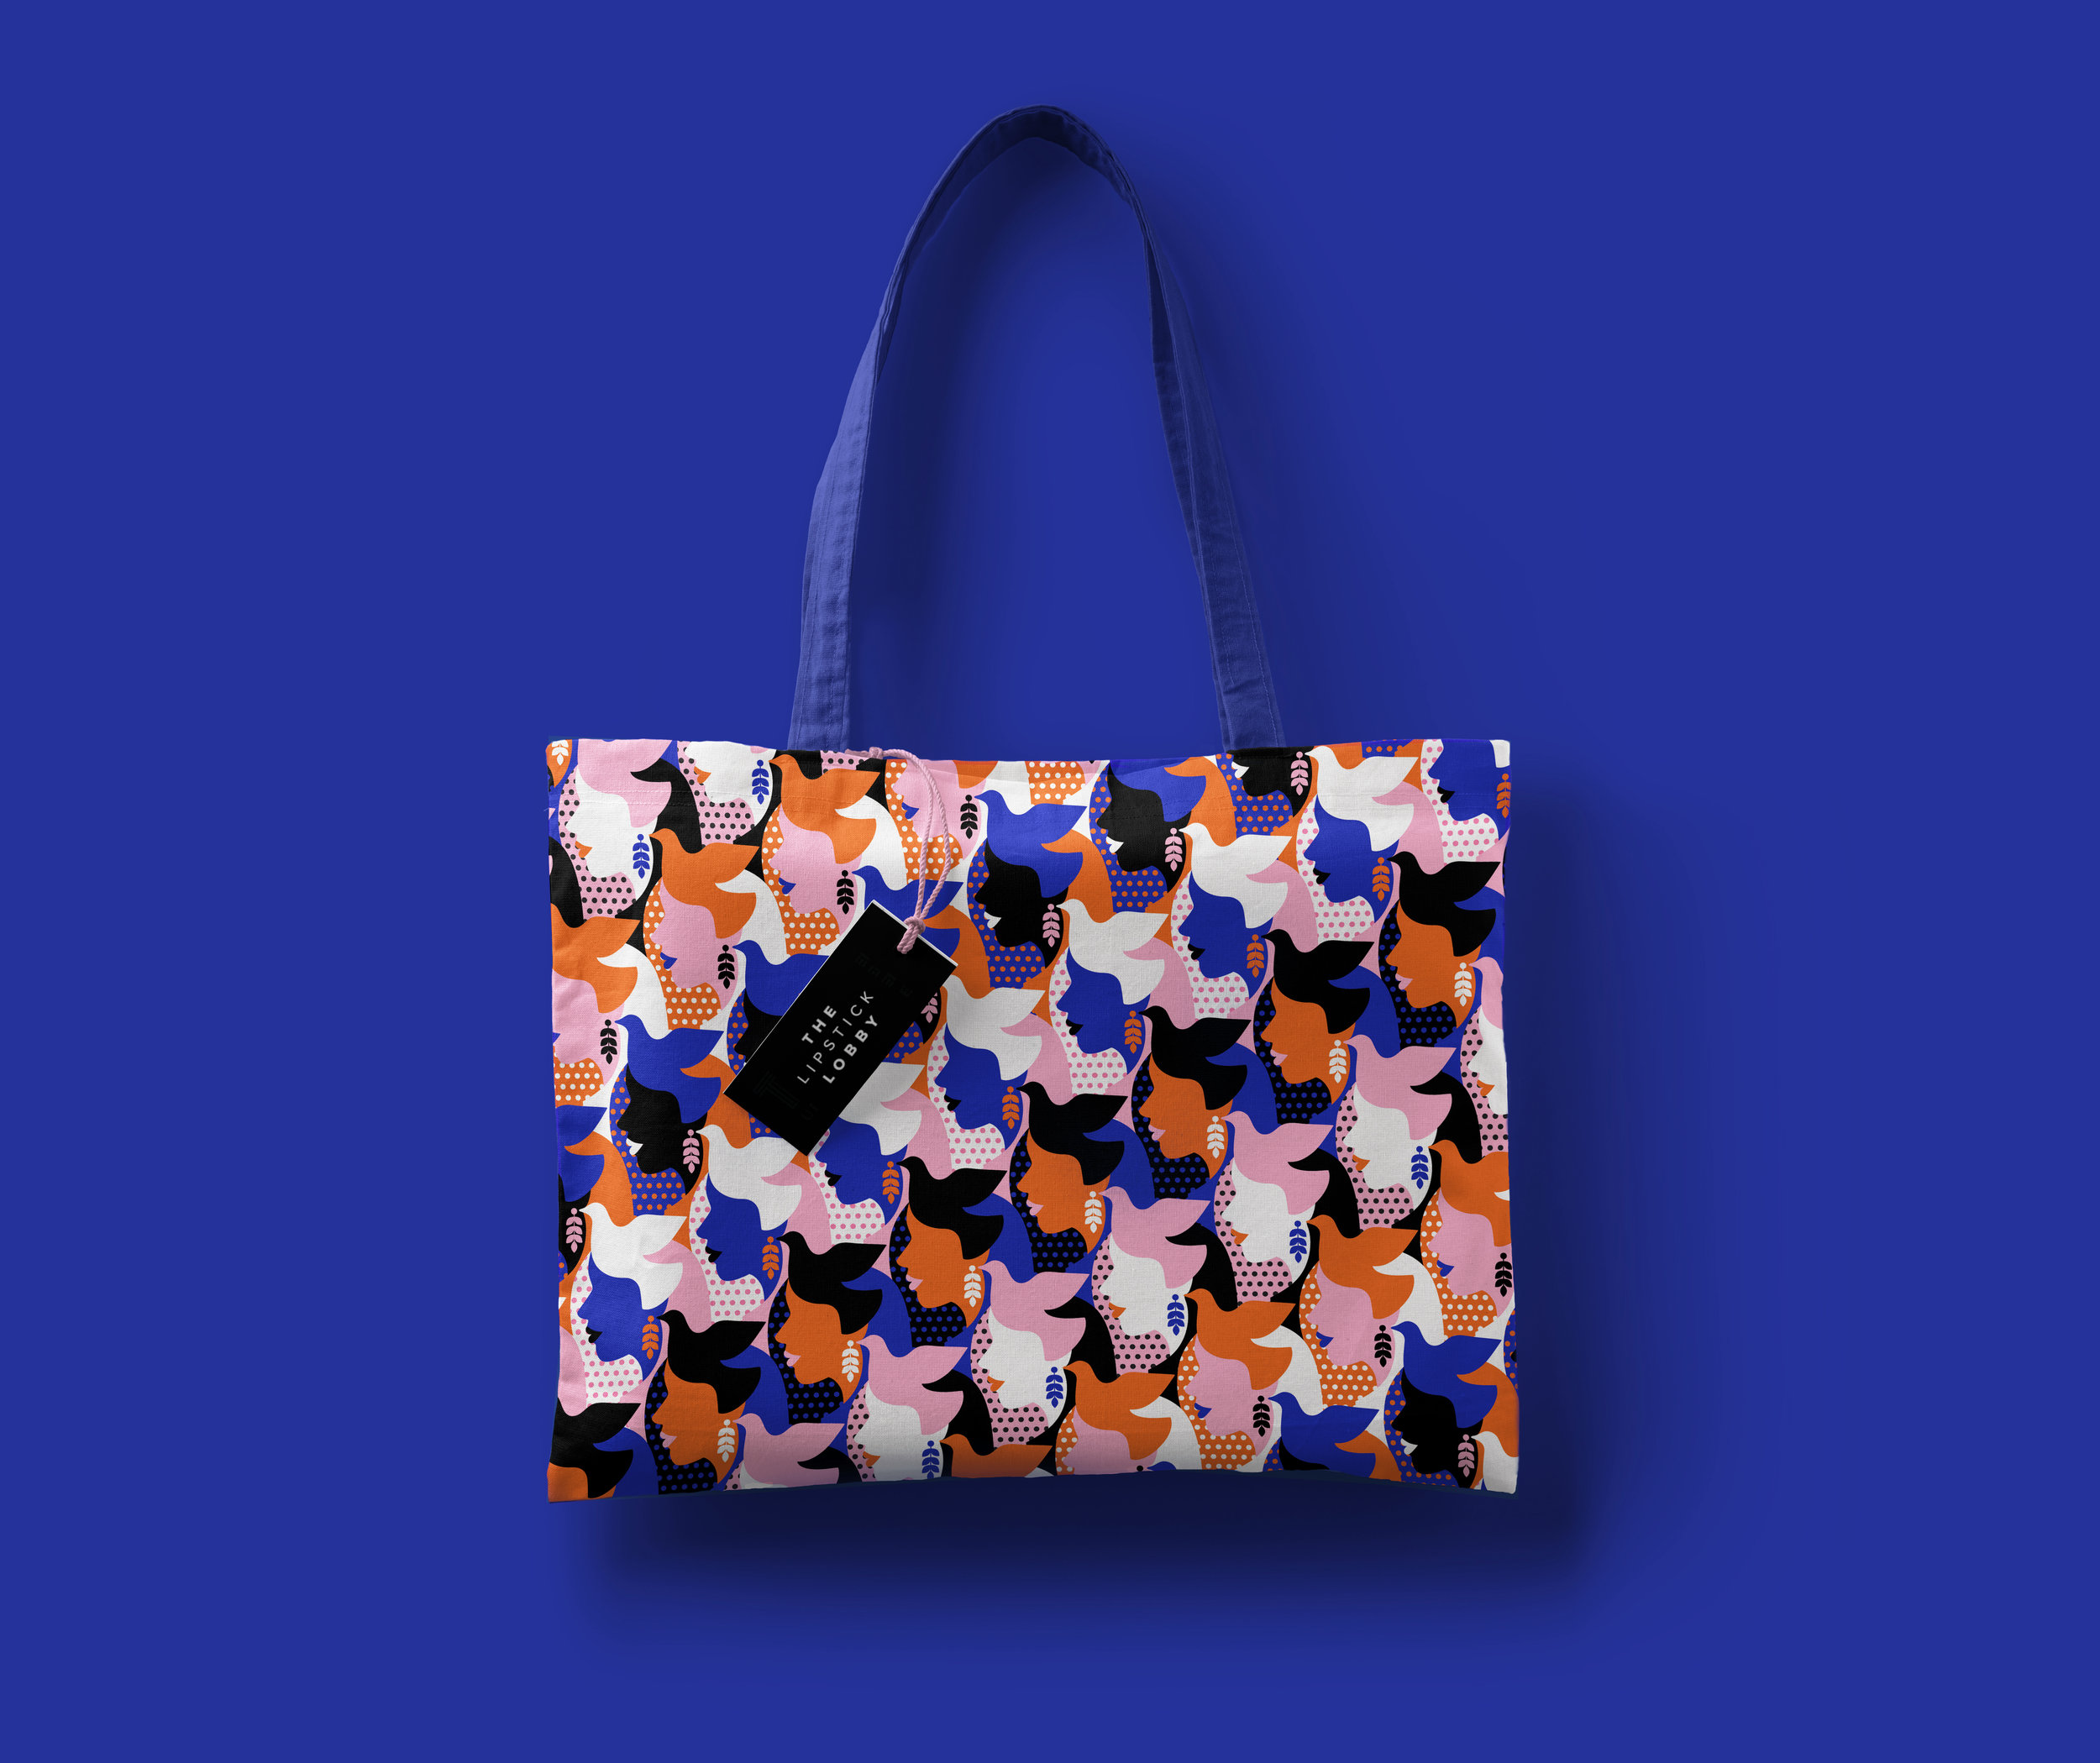 Tote-&-Drawstring-Fabric-Bags-Mockup copy.jpg